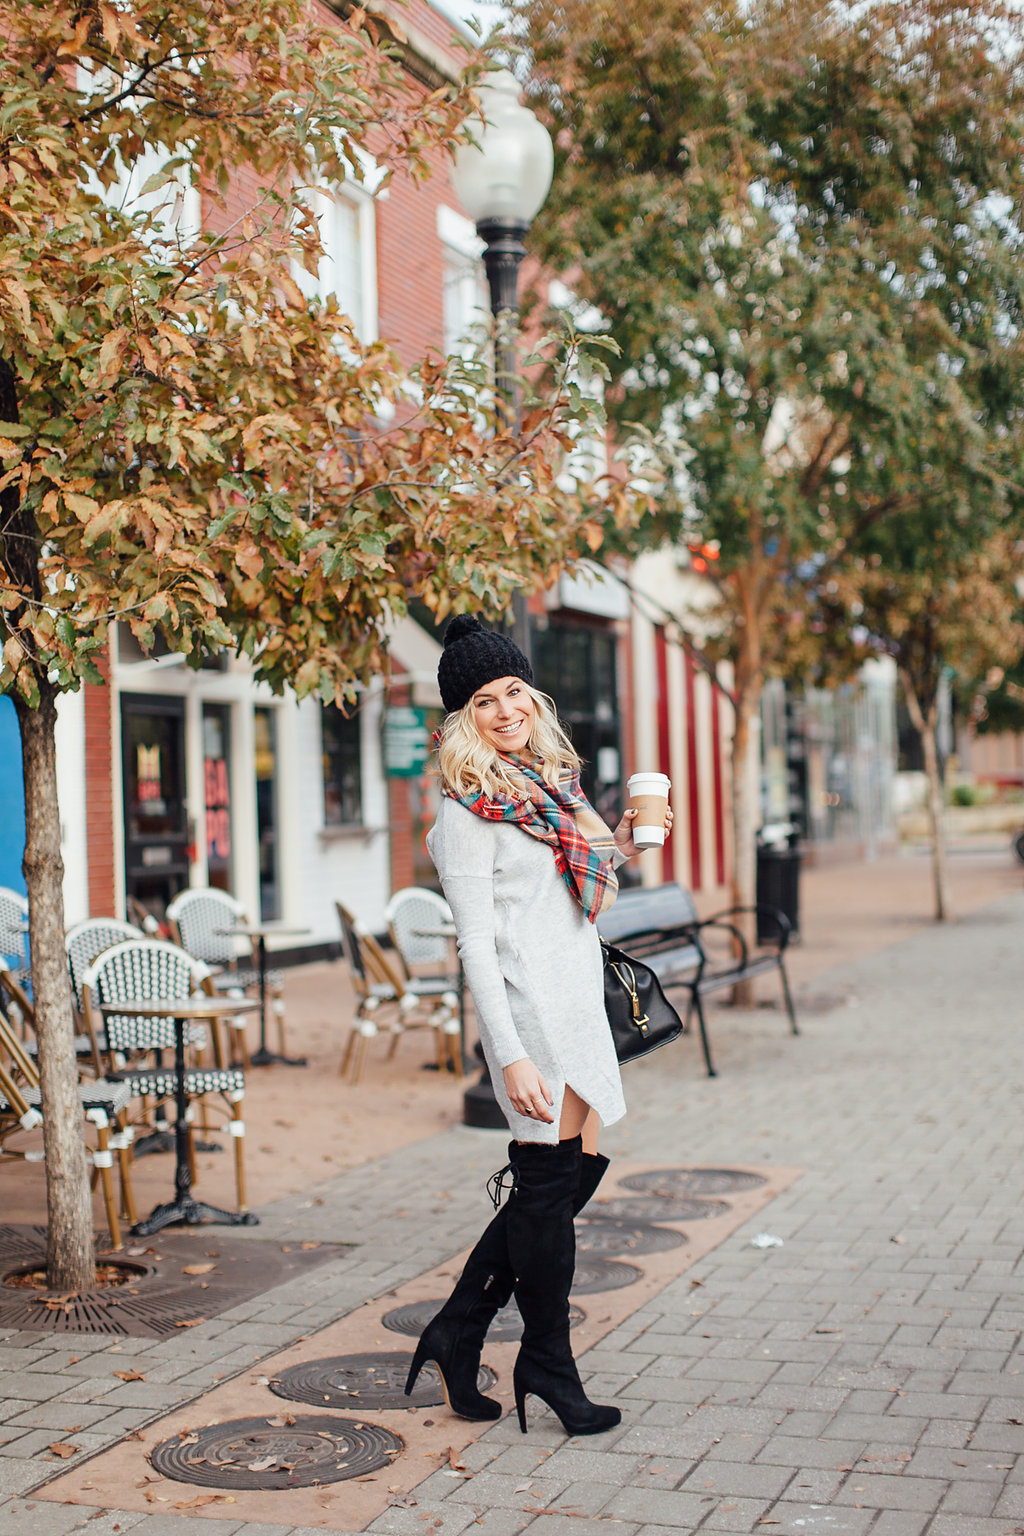 47c67fbc67 This entire look combines several of my favorite things for a cute winter  outfit. A cozy sweater dress like this grey sweater dress